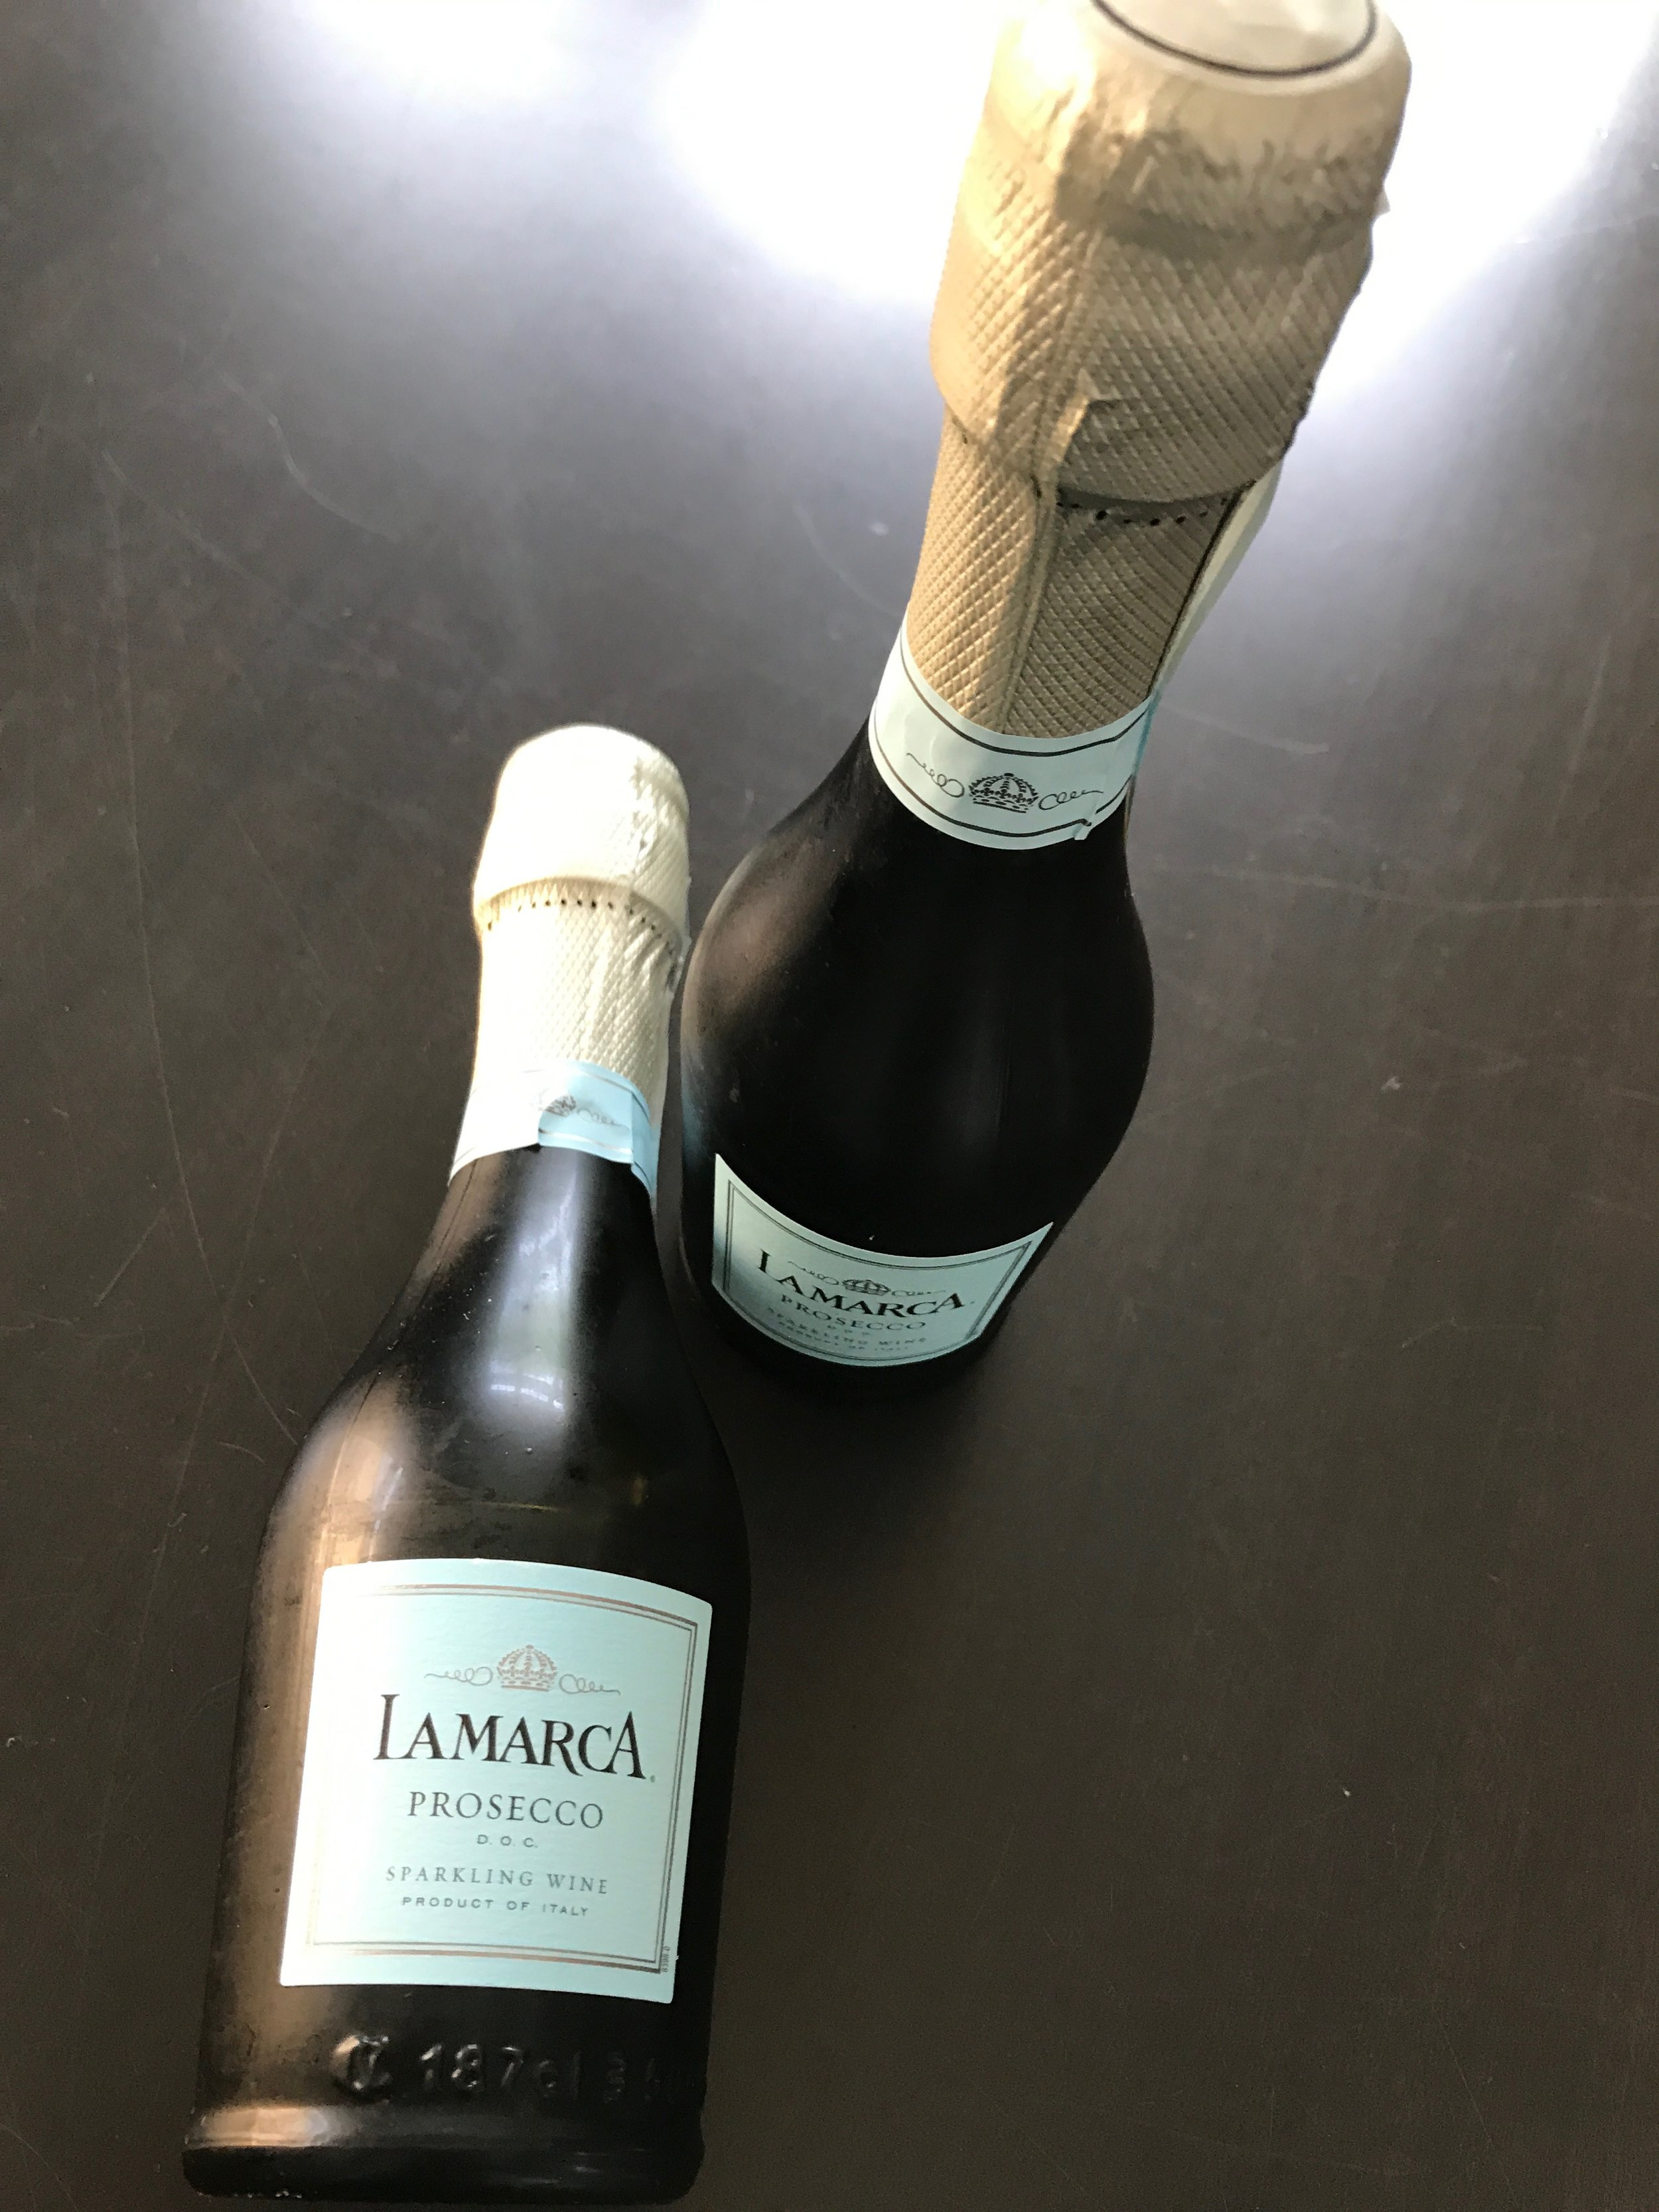 Since I learned about the Prosecco tip at a wine tasting event (look for more on this event in a future post), I decided single serving bottles are better for me. Opening up a full bottle doesn't make sense unless I'm going to be with friends. This size bottles are sold at Target for $4.99.